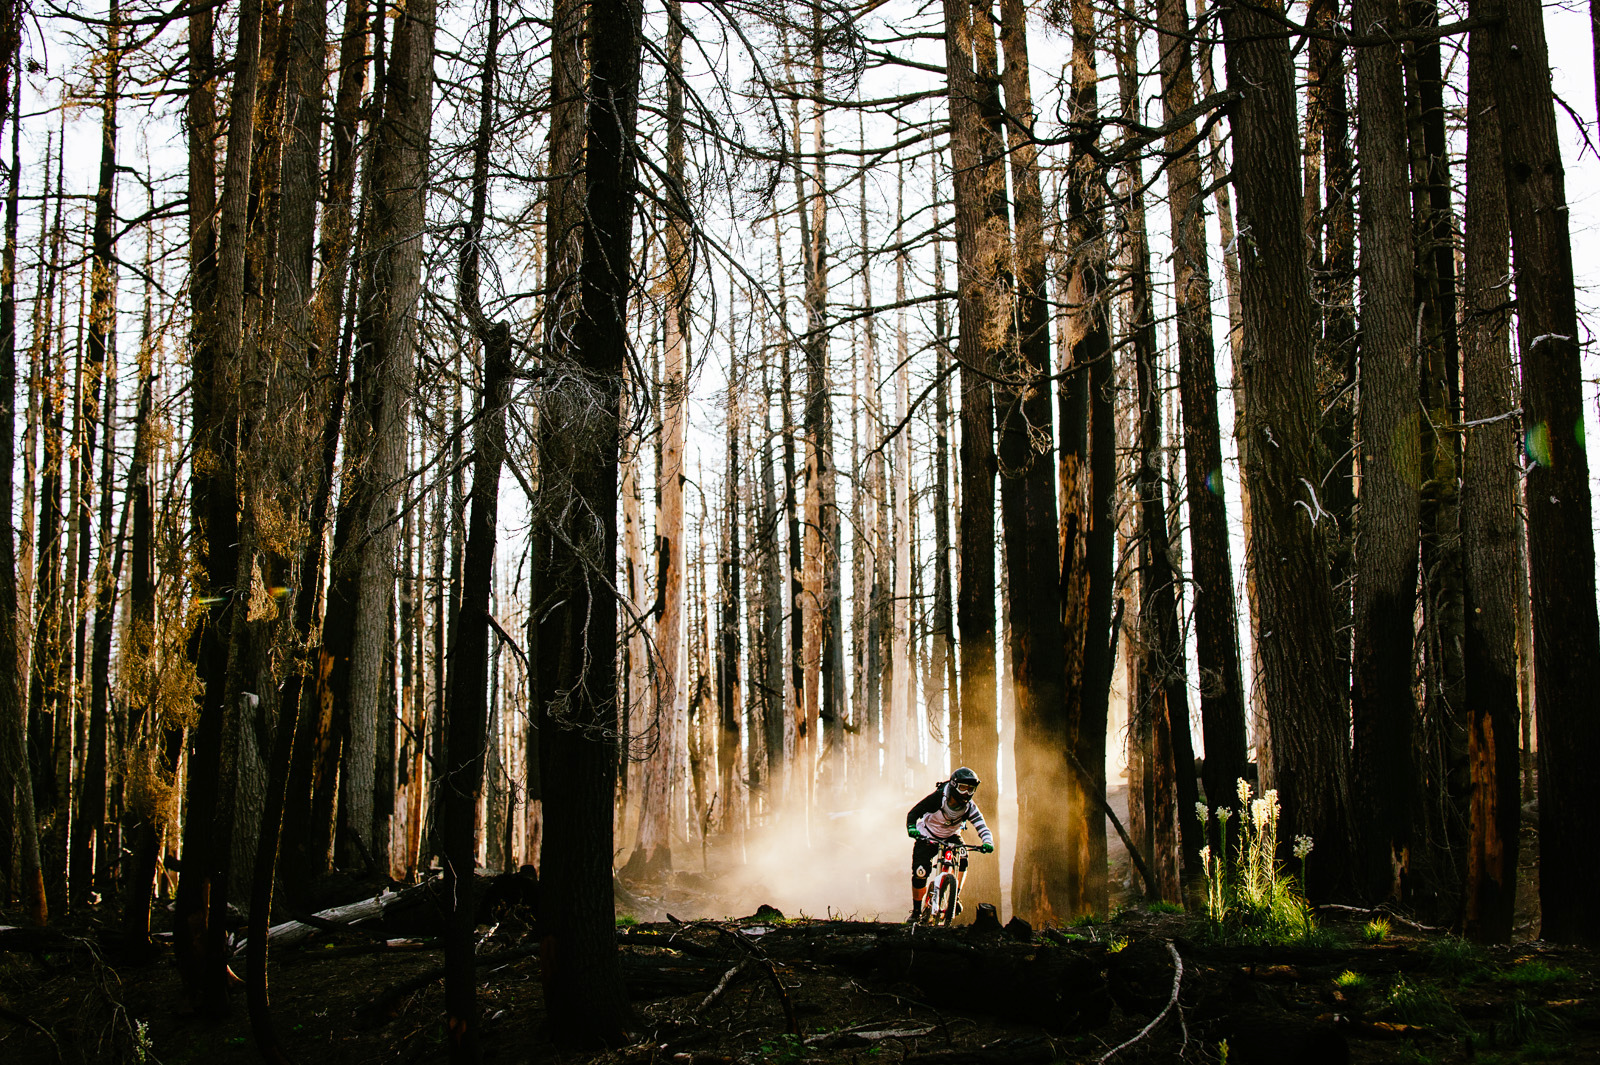 An old trail filled with moondust gave us some pretty amazing riding and shooting conditions.